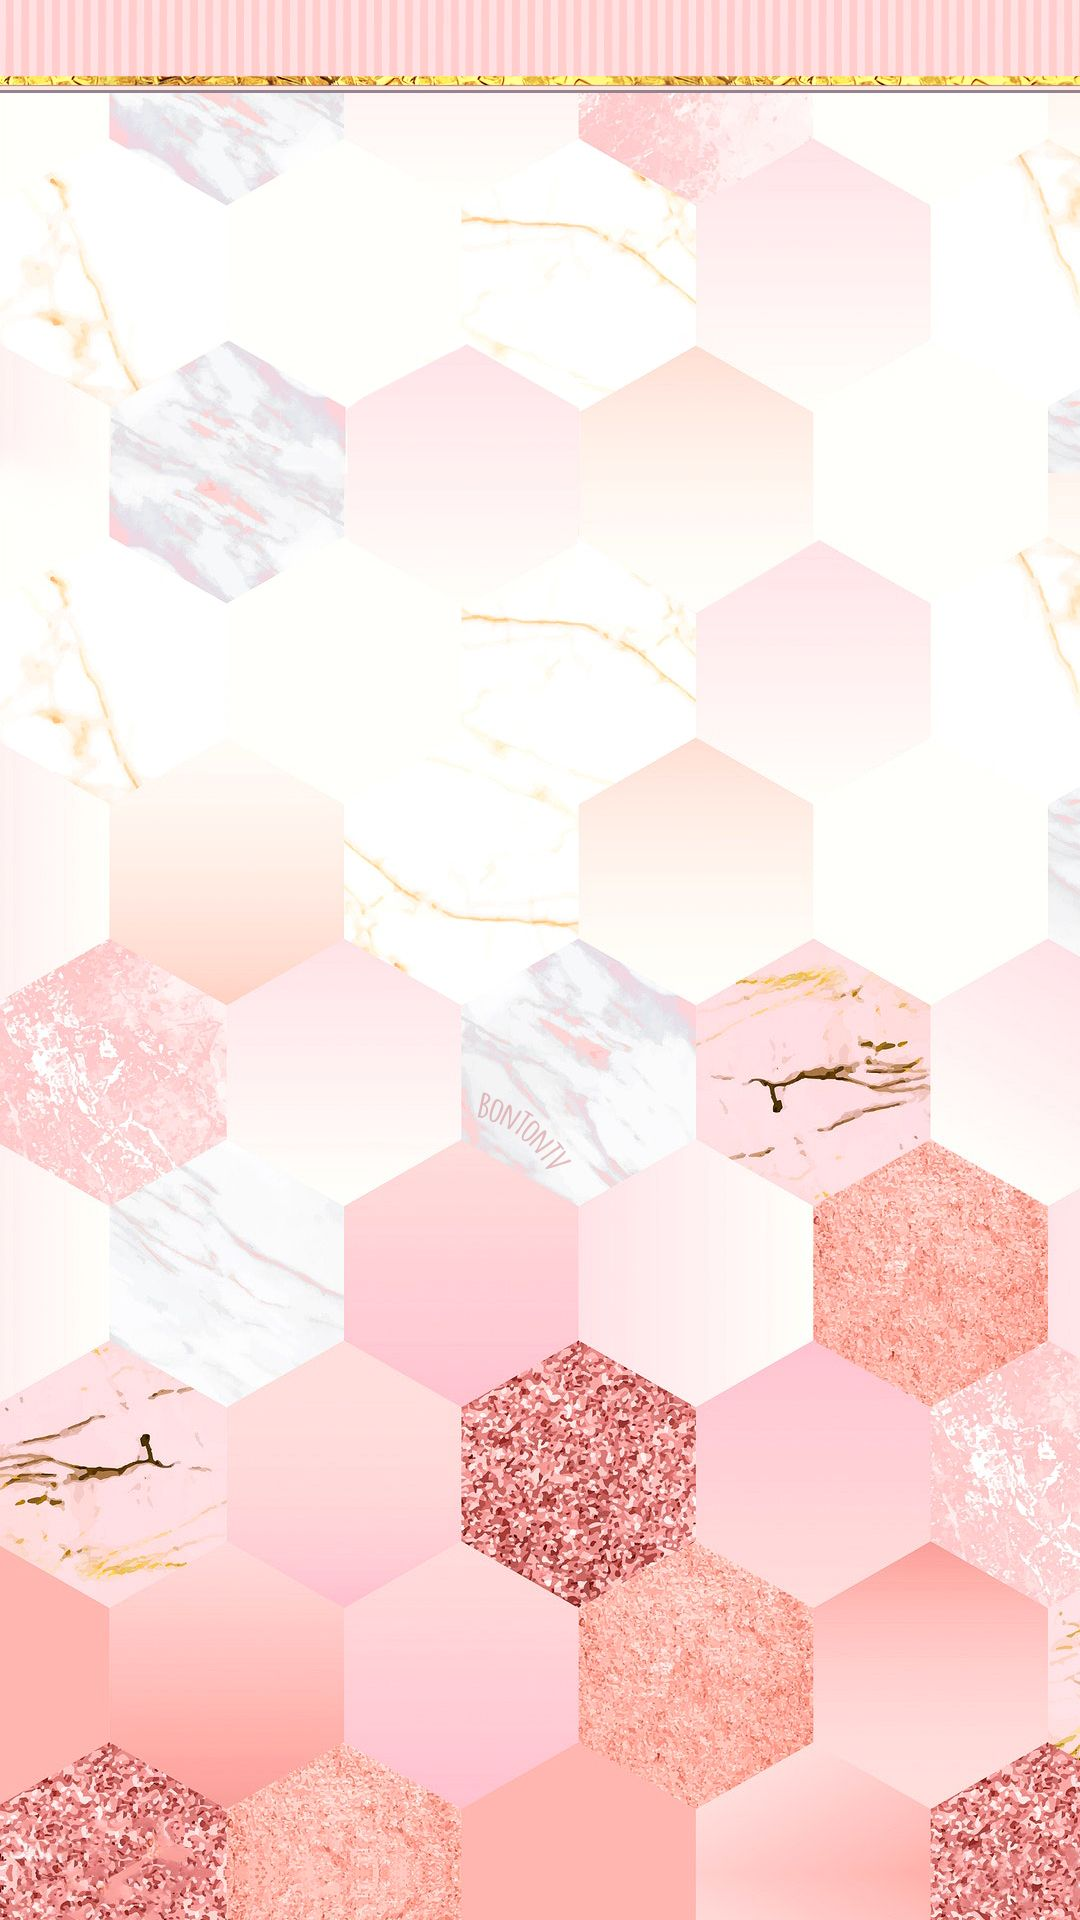 Phone Wallpapers Hd Cute Girly Pink Hexagons With Gold By Bonton